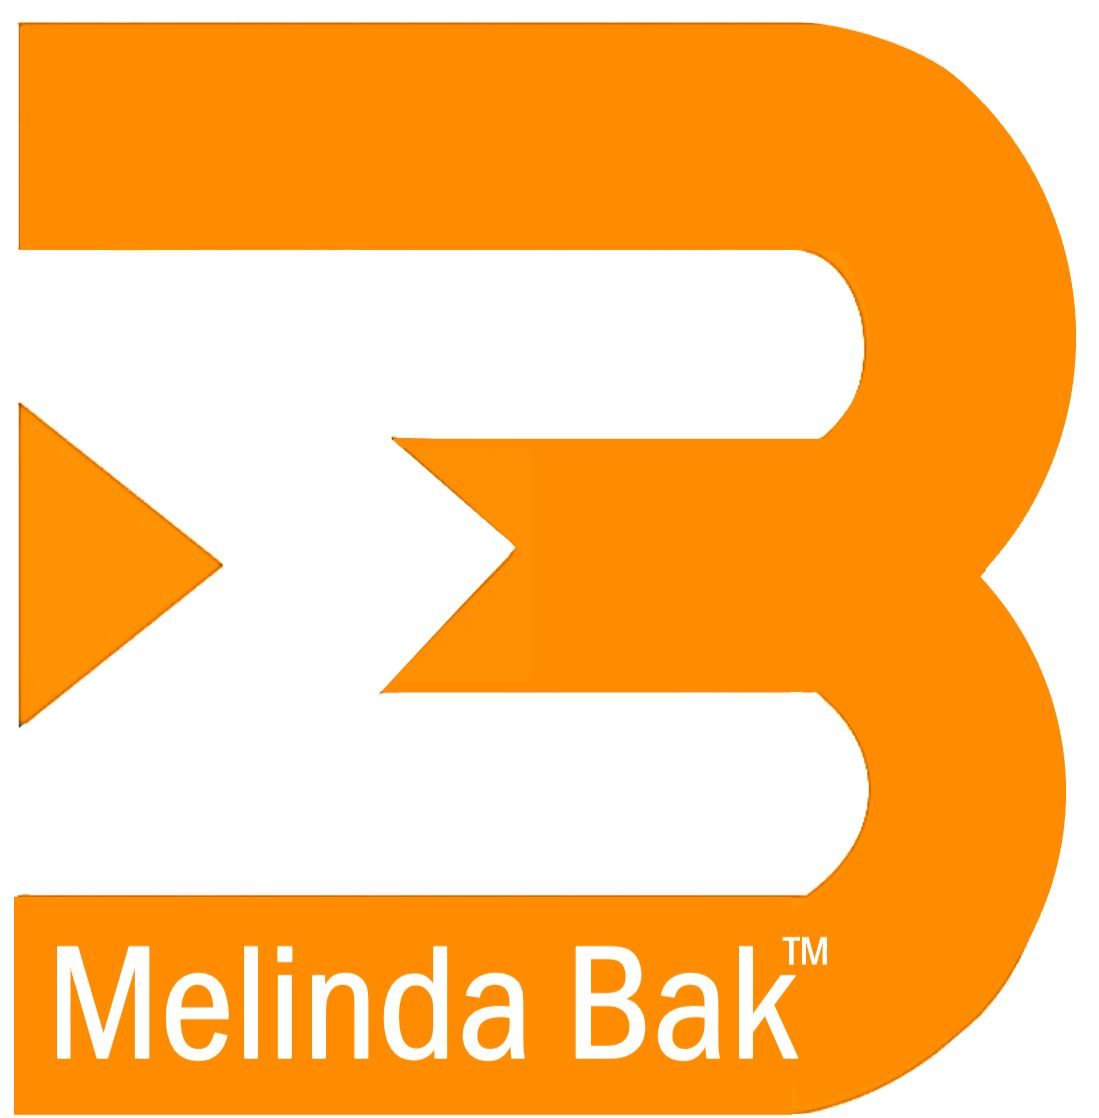 Melinda Bak, Website Design - send potential clients to your website, be proud of your small business website